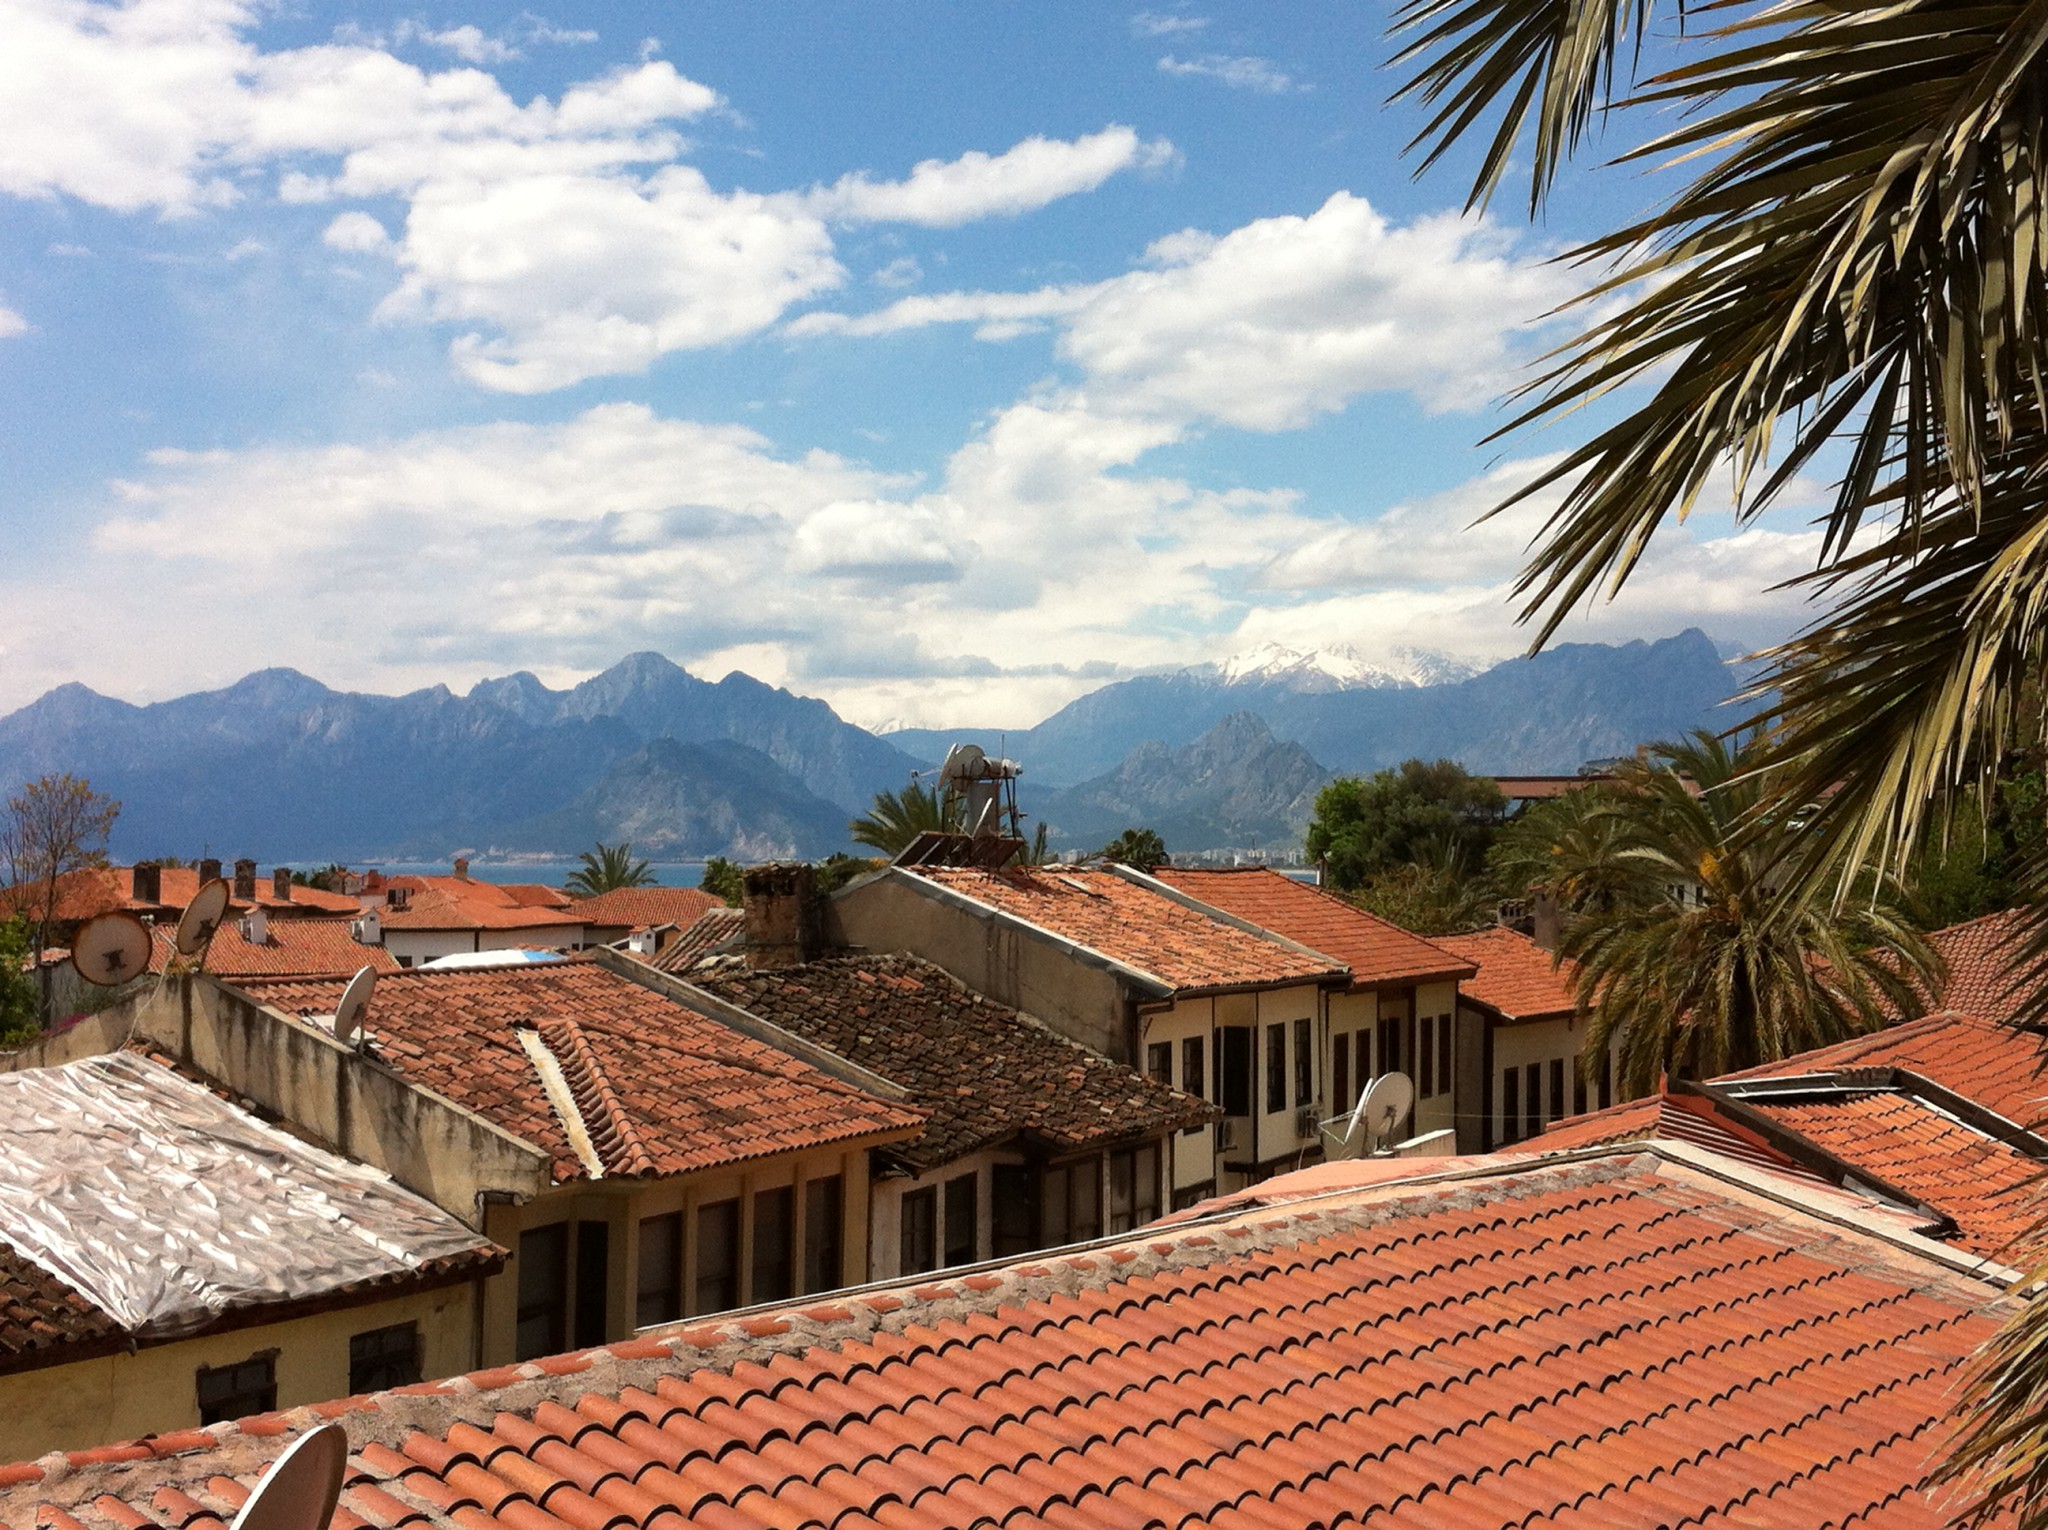 Walk in Kaleici, Antalya Old Town - Routes and Trips